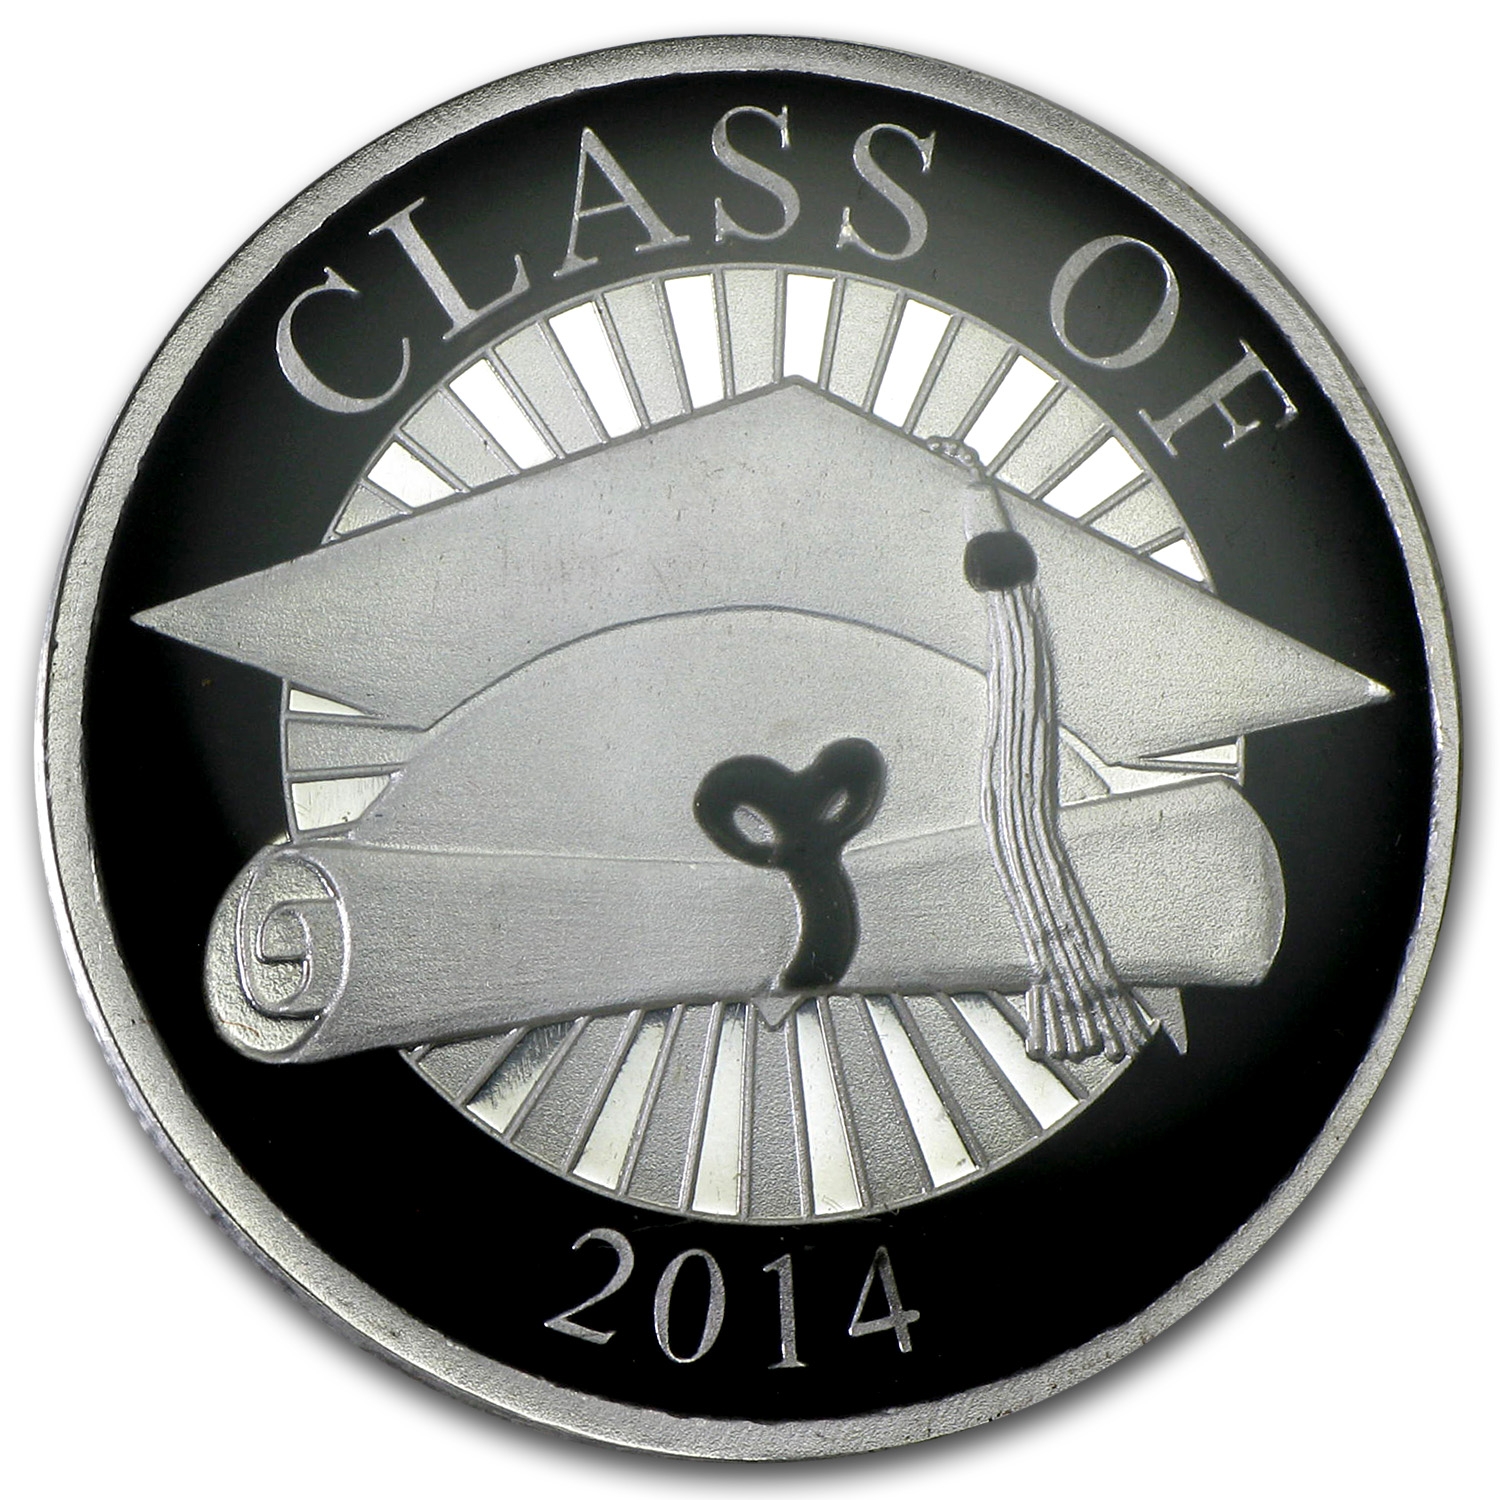 1 oz Silver Round - Graduation 2014 (Enameled,w/Box & Capsule)